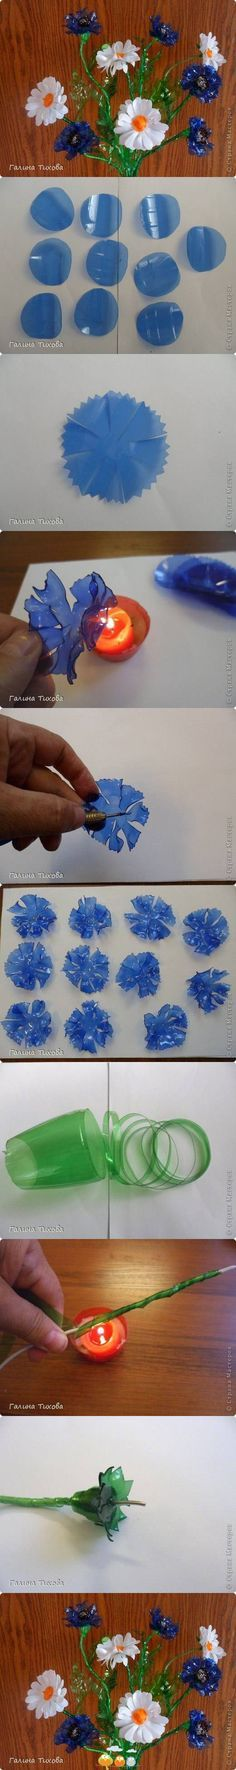 recycled flowers